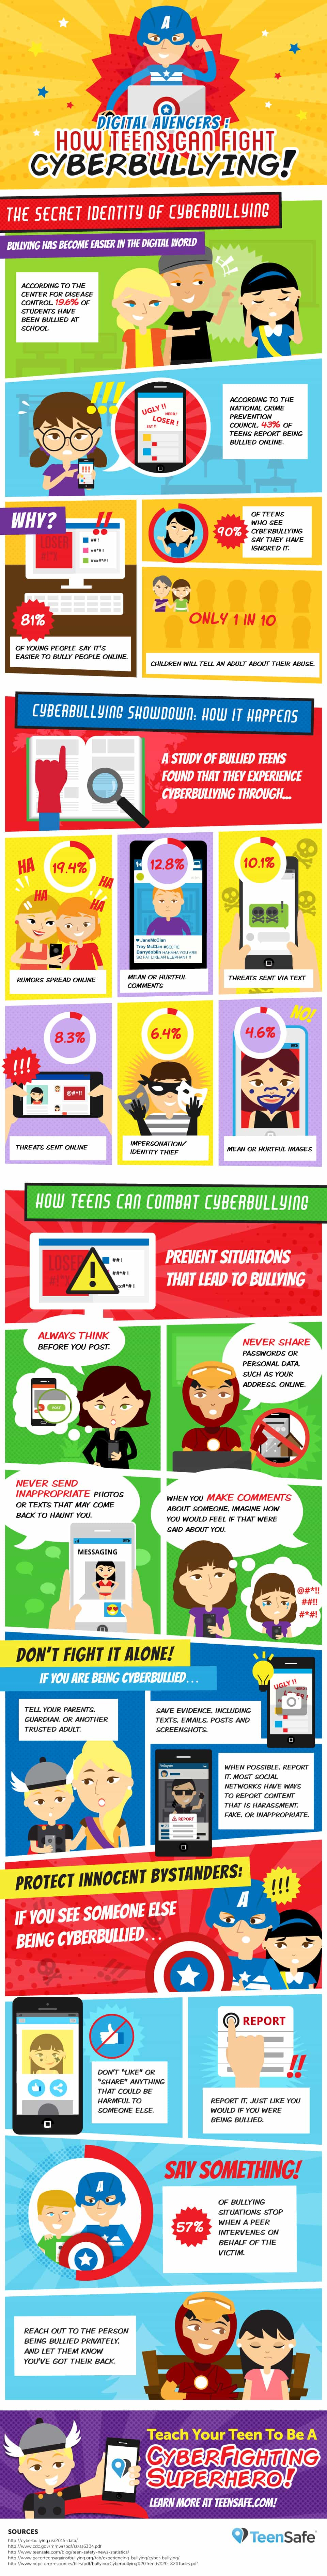 DigitalAvengersTeensFightCyberbullying-Cl